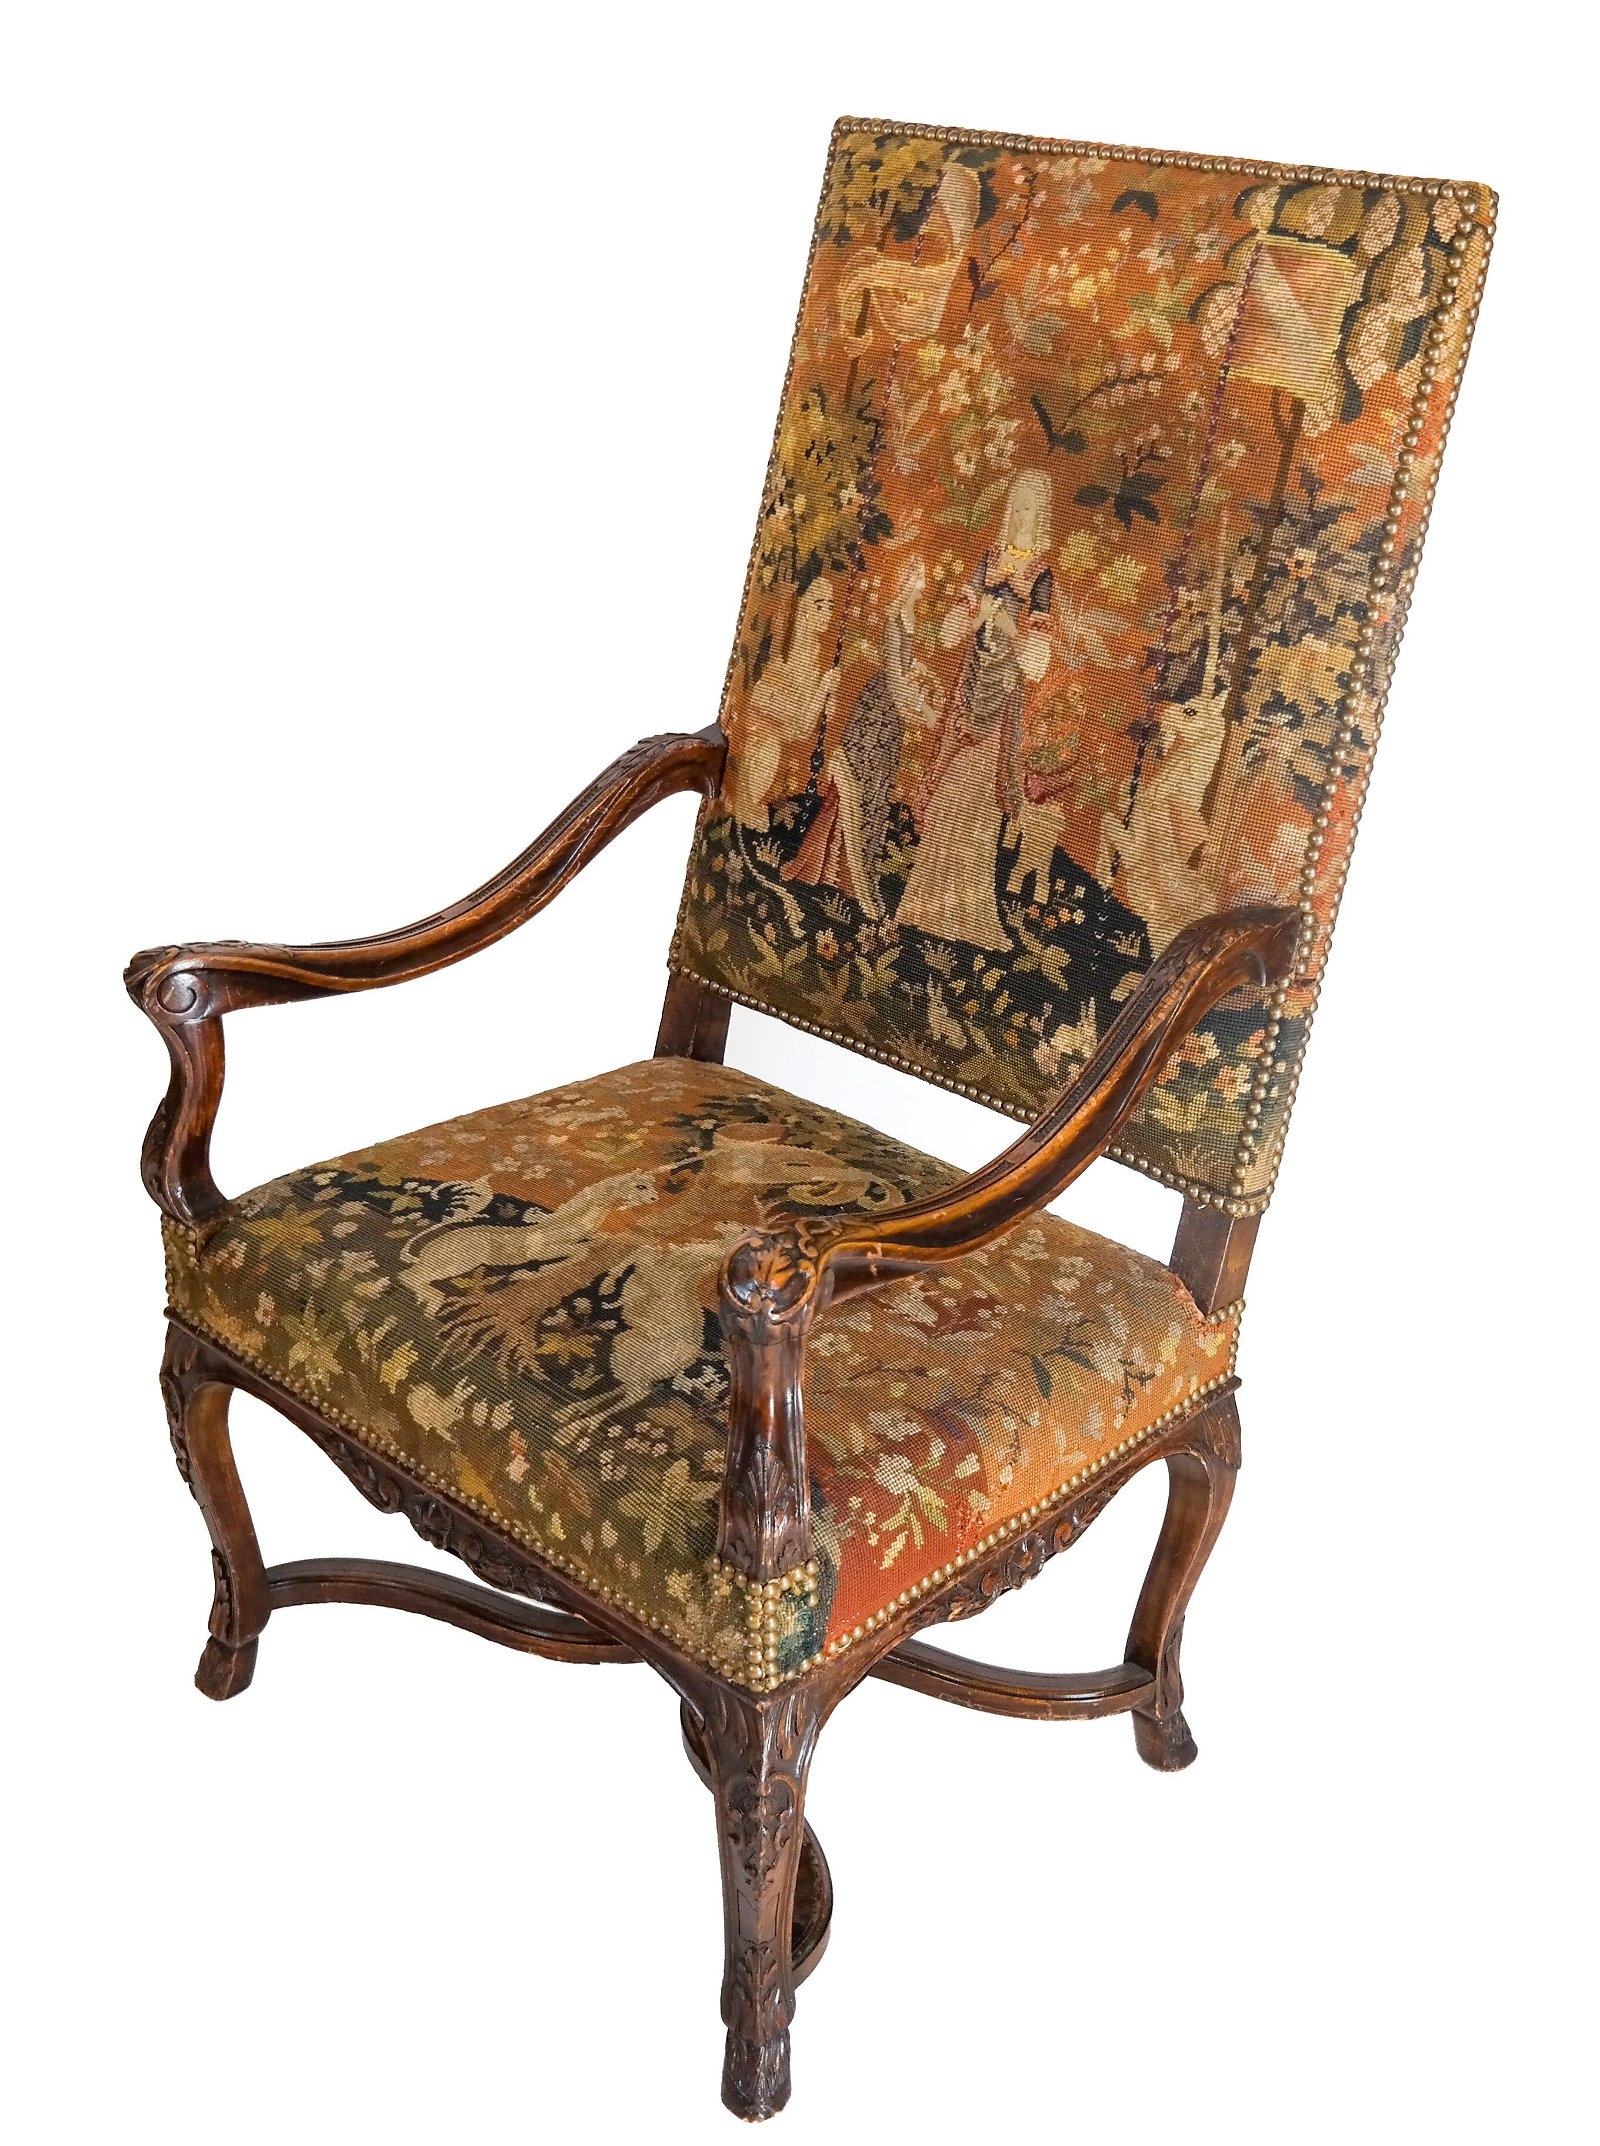 Antique Needlepoint Arm Chair